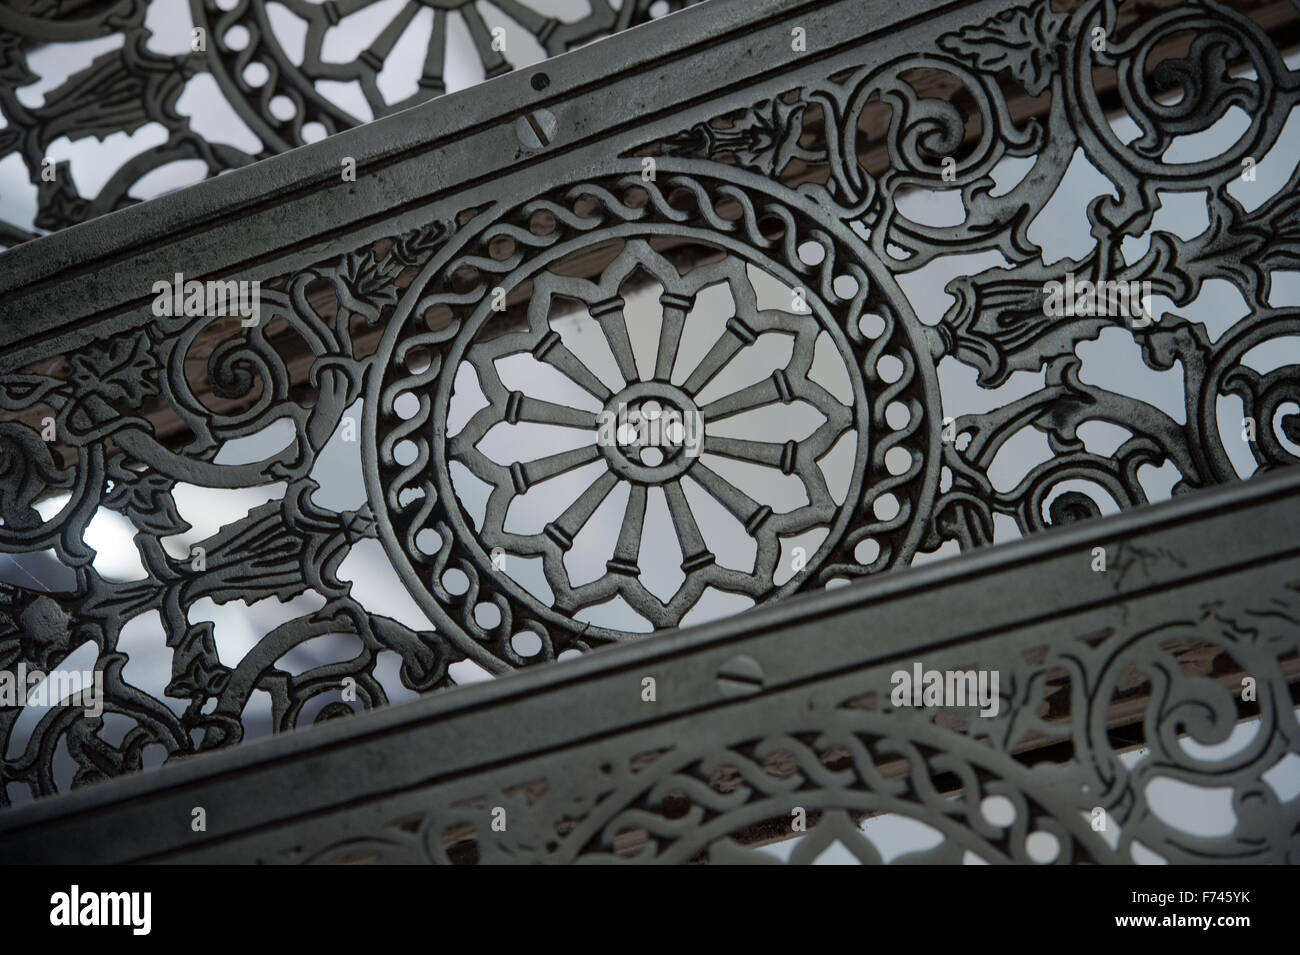 Beautiful Details Of The Cast Iron Steps On The Circular Staircase In The Tower Of  The Granitz Hunting Lodge Near Binz, Germany, 23 November 2015.